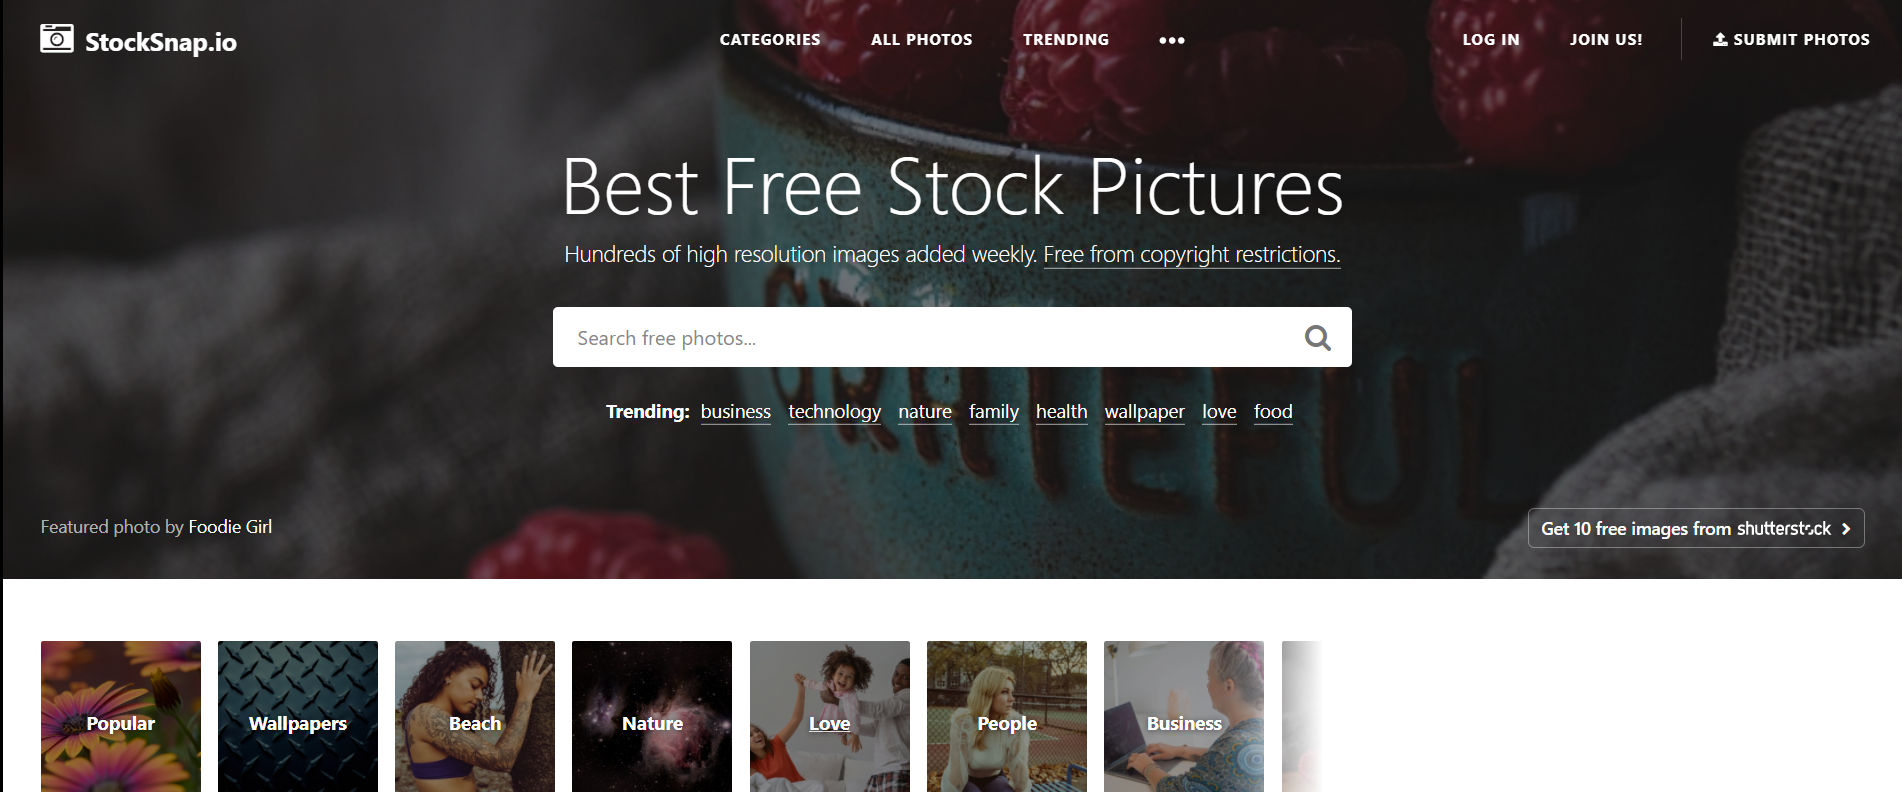 StockSnap website cover